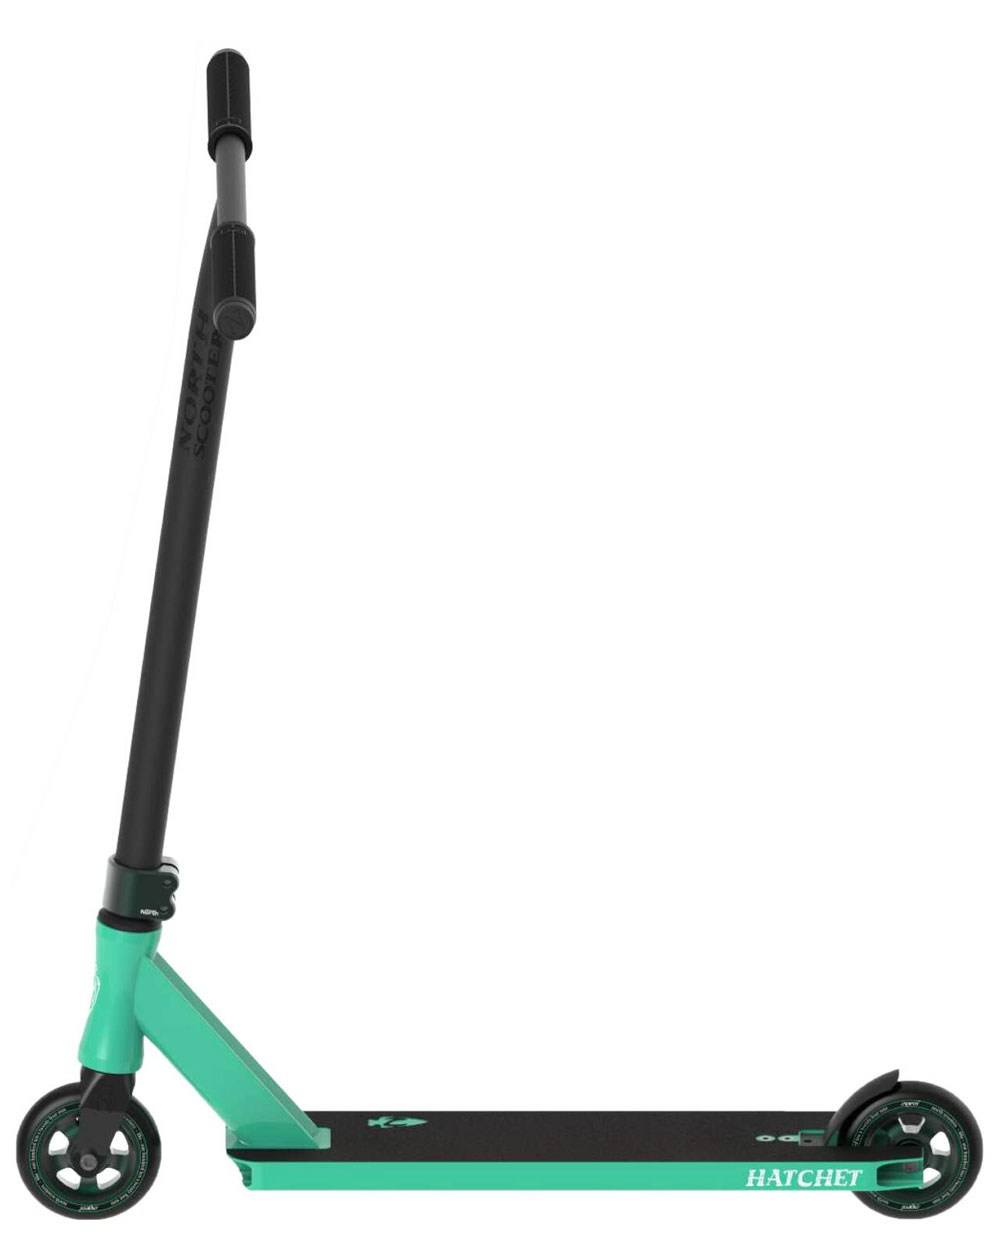 North Scooters Hatchet 2020 Stunt Scooter Seafoam/Forest